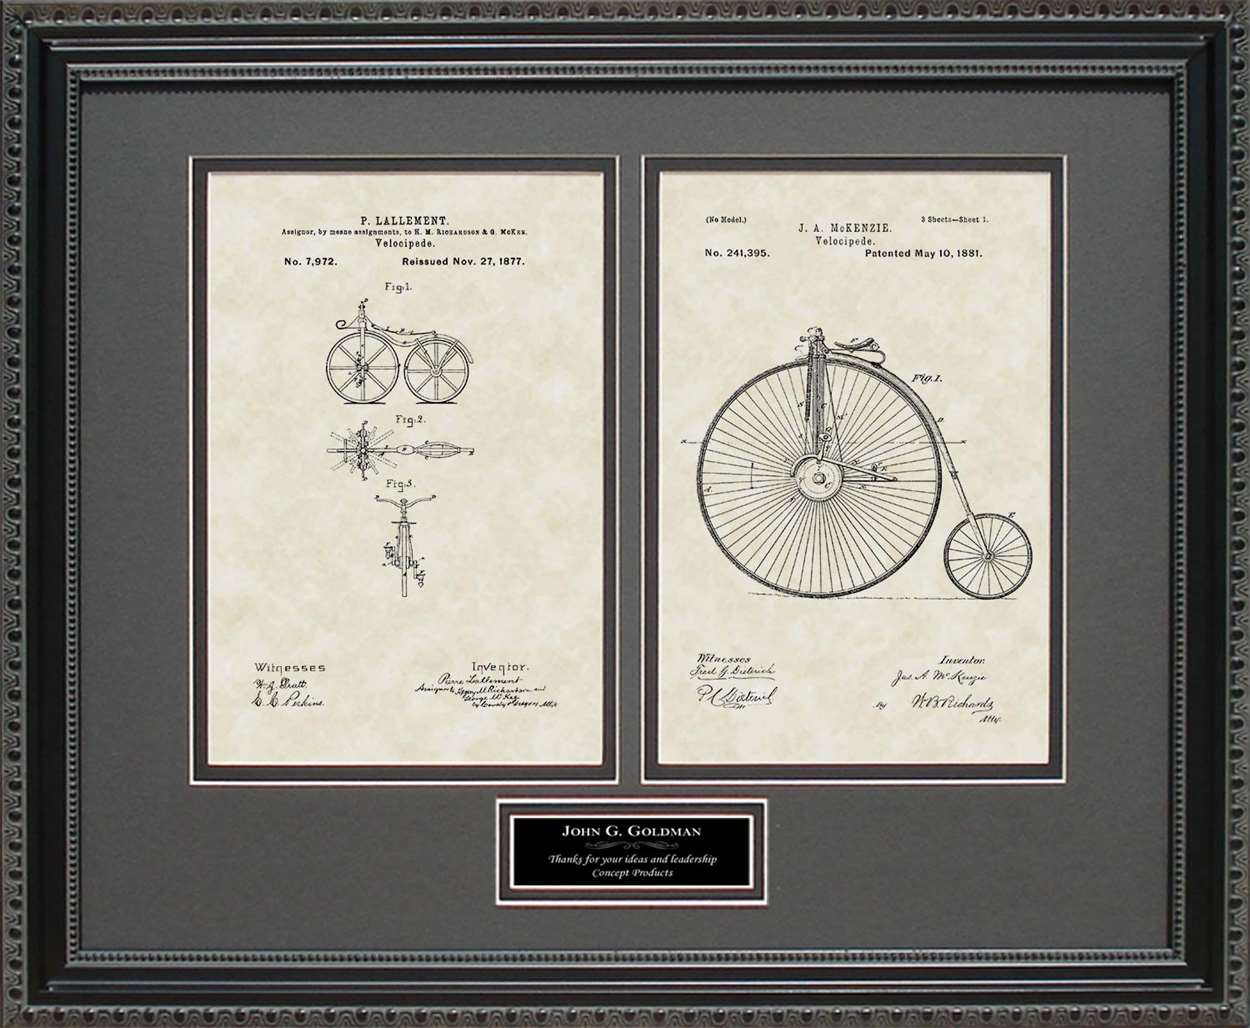 Personalized Early Bicycles Patents, 16x20